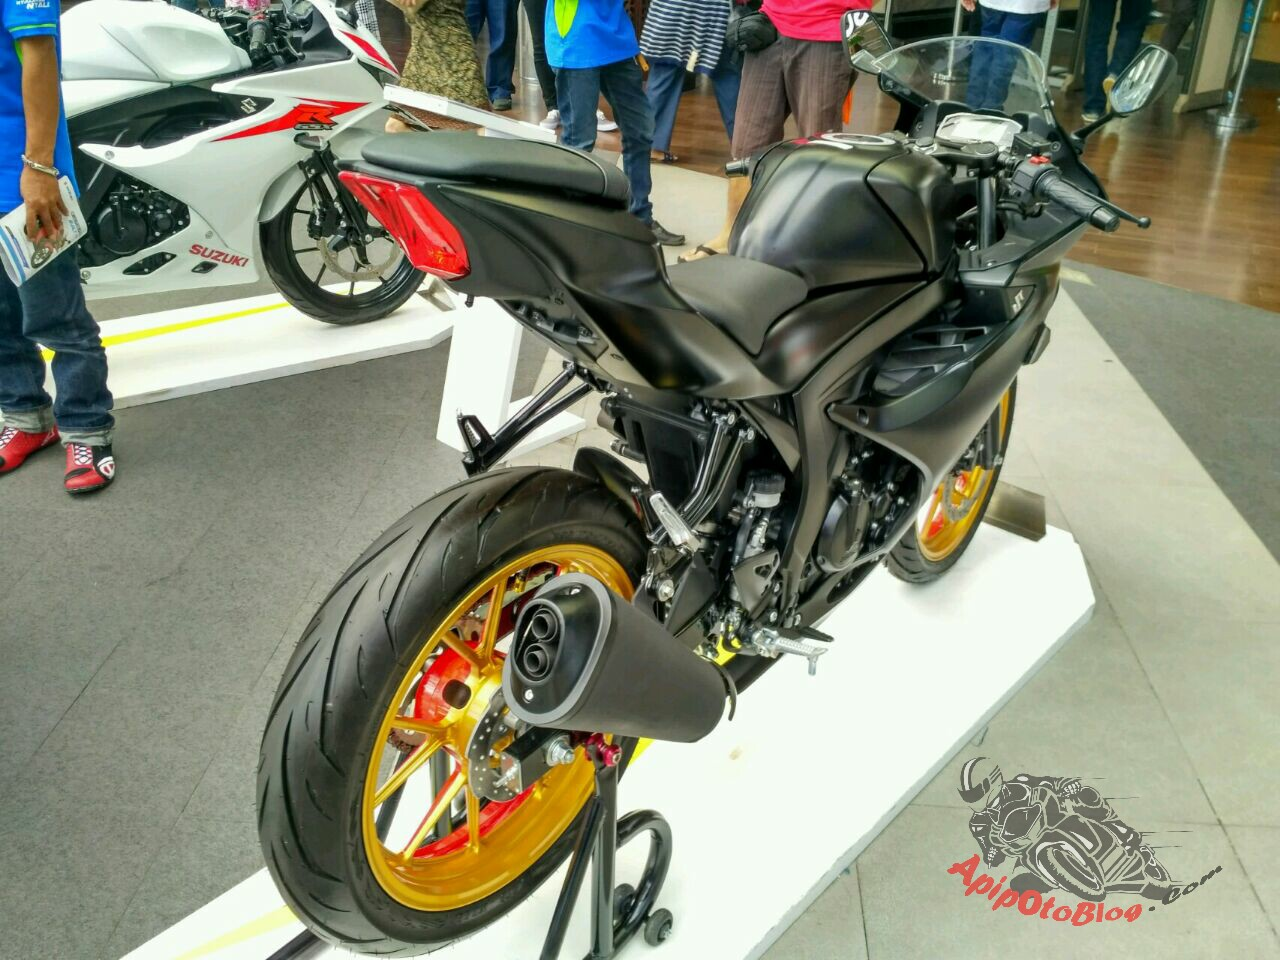 Modifikasi Suzuki GSX R150 Black Matte Velg Two tone..!